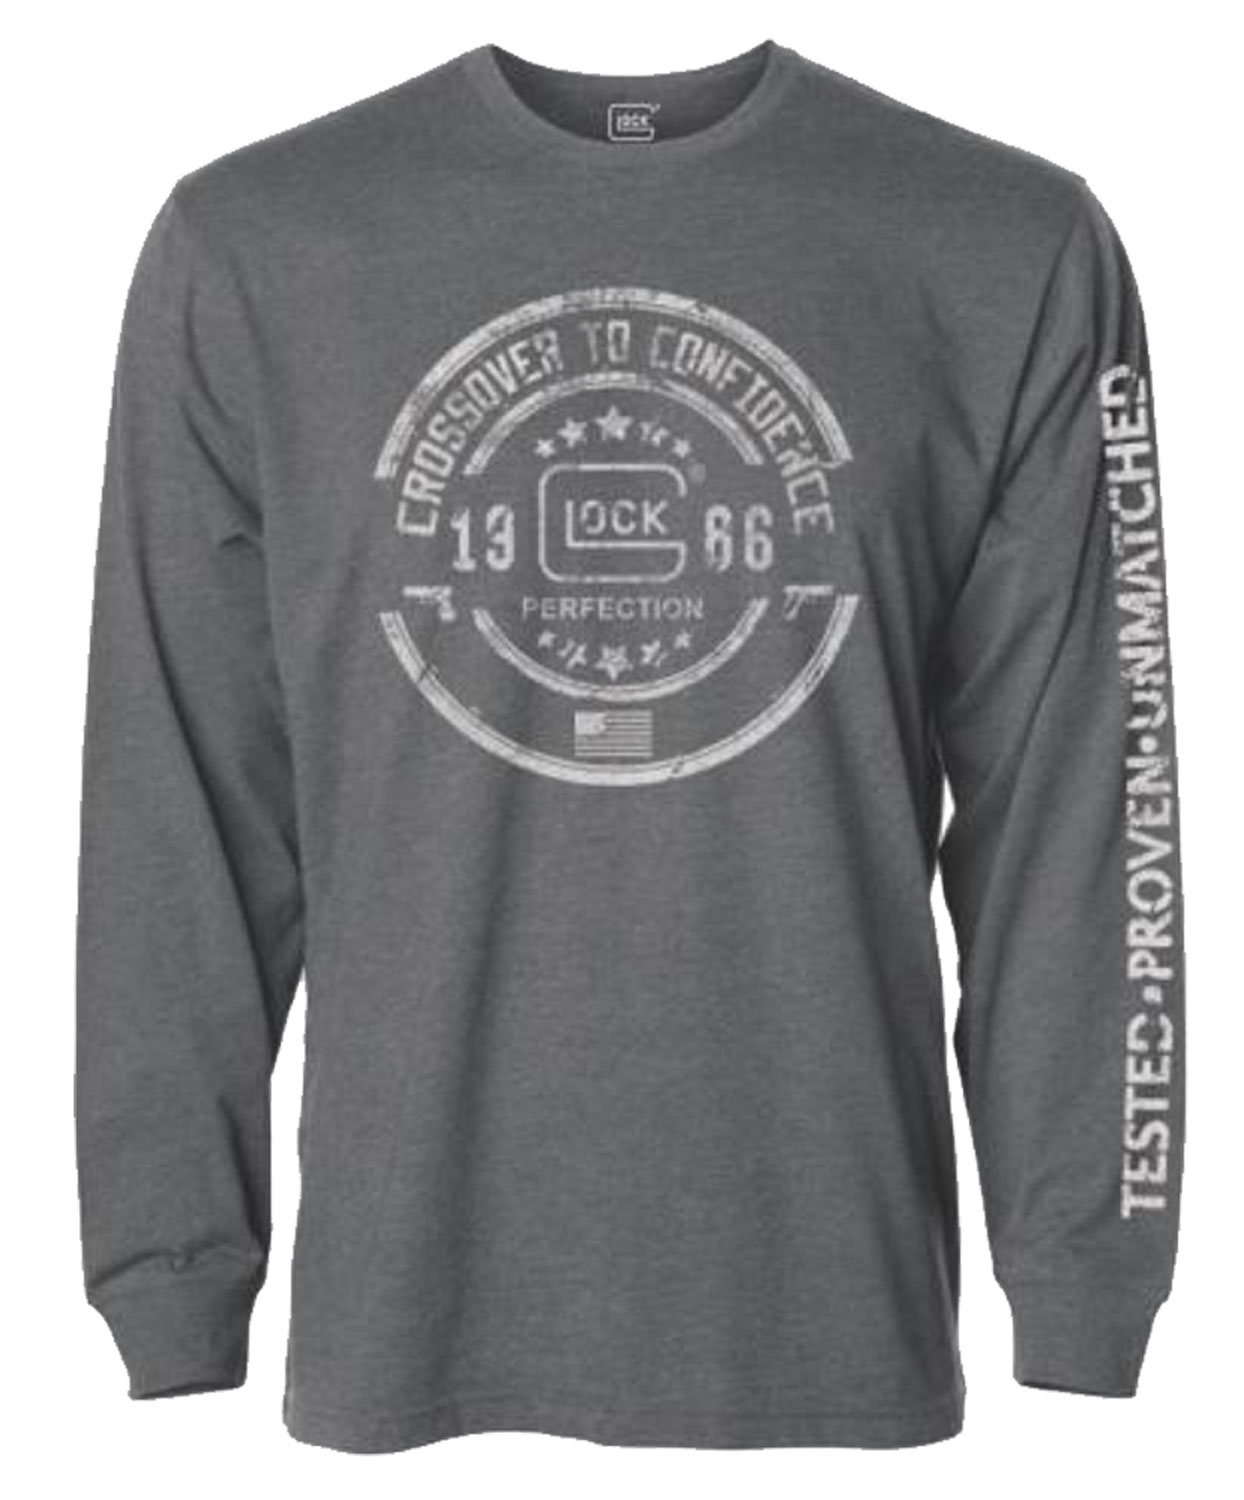 GLOCK CROSSOVER LONG SLEEVE T-SHIRT GREY 3XL